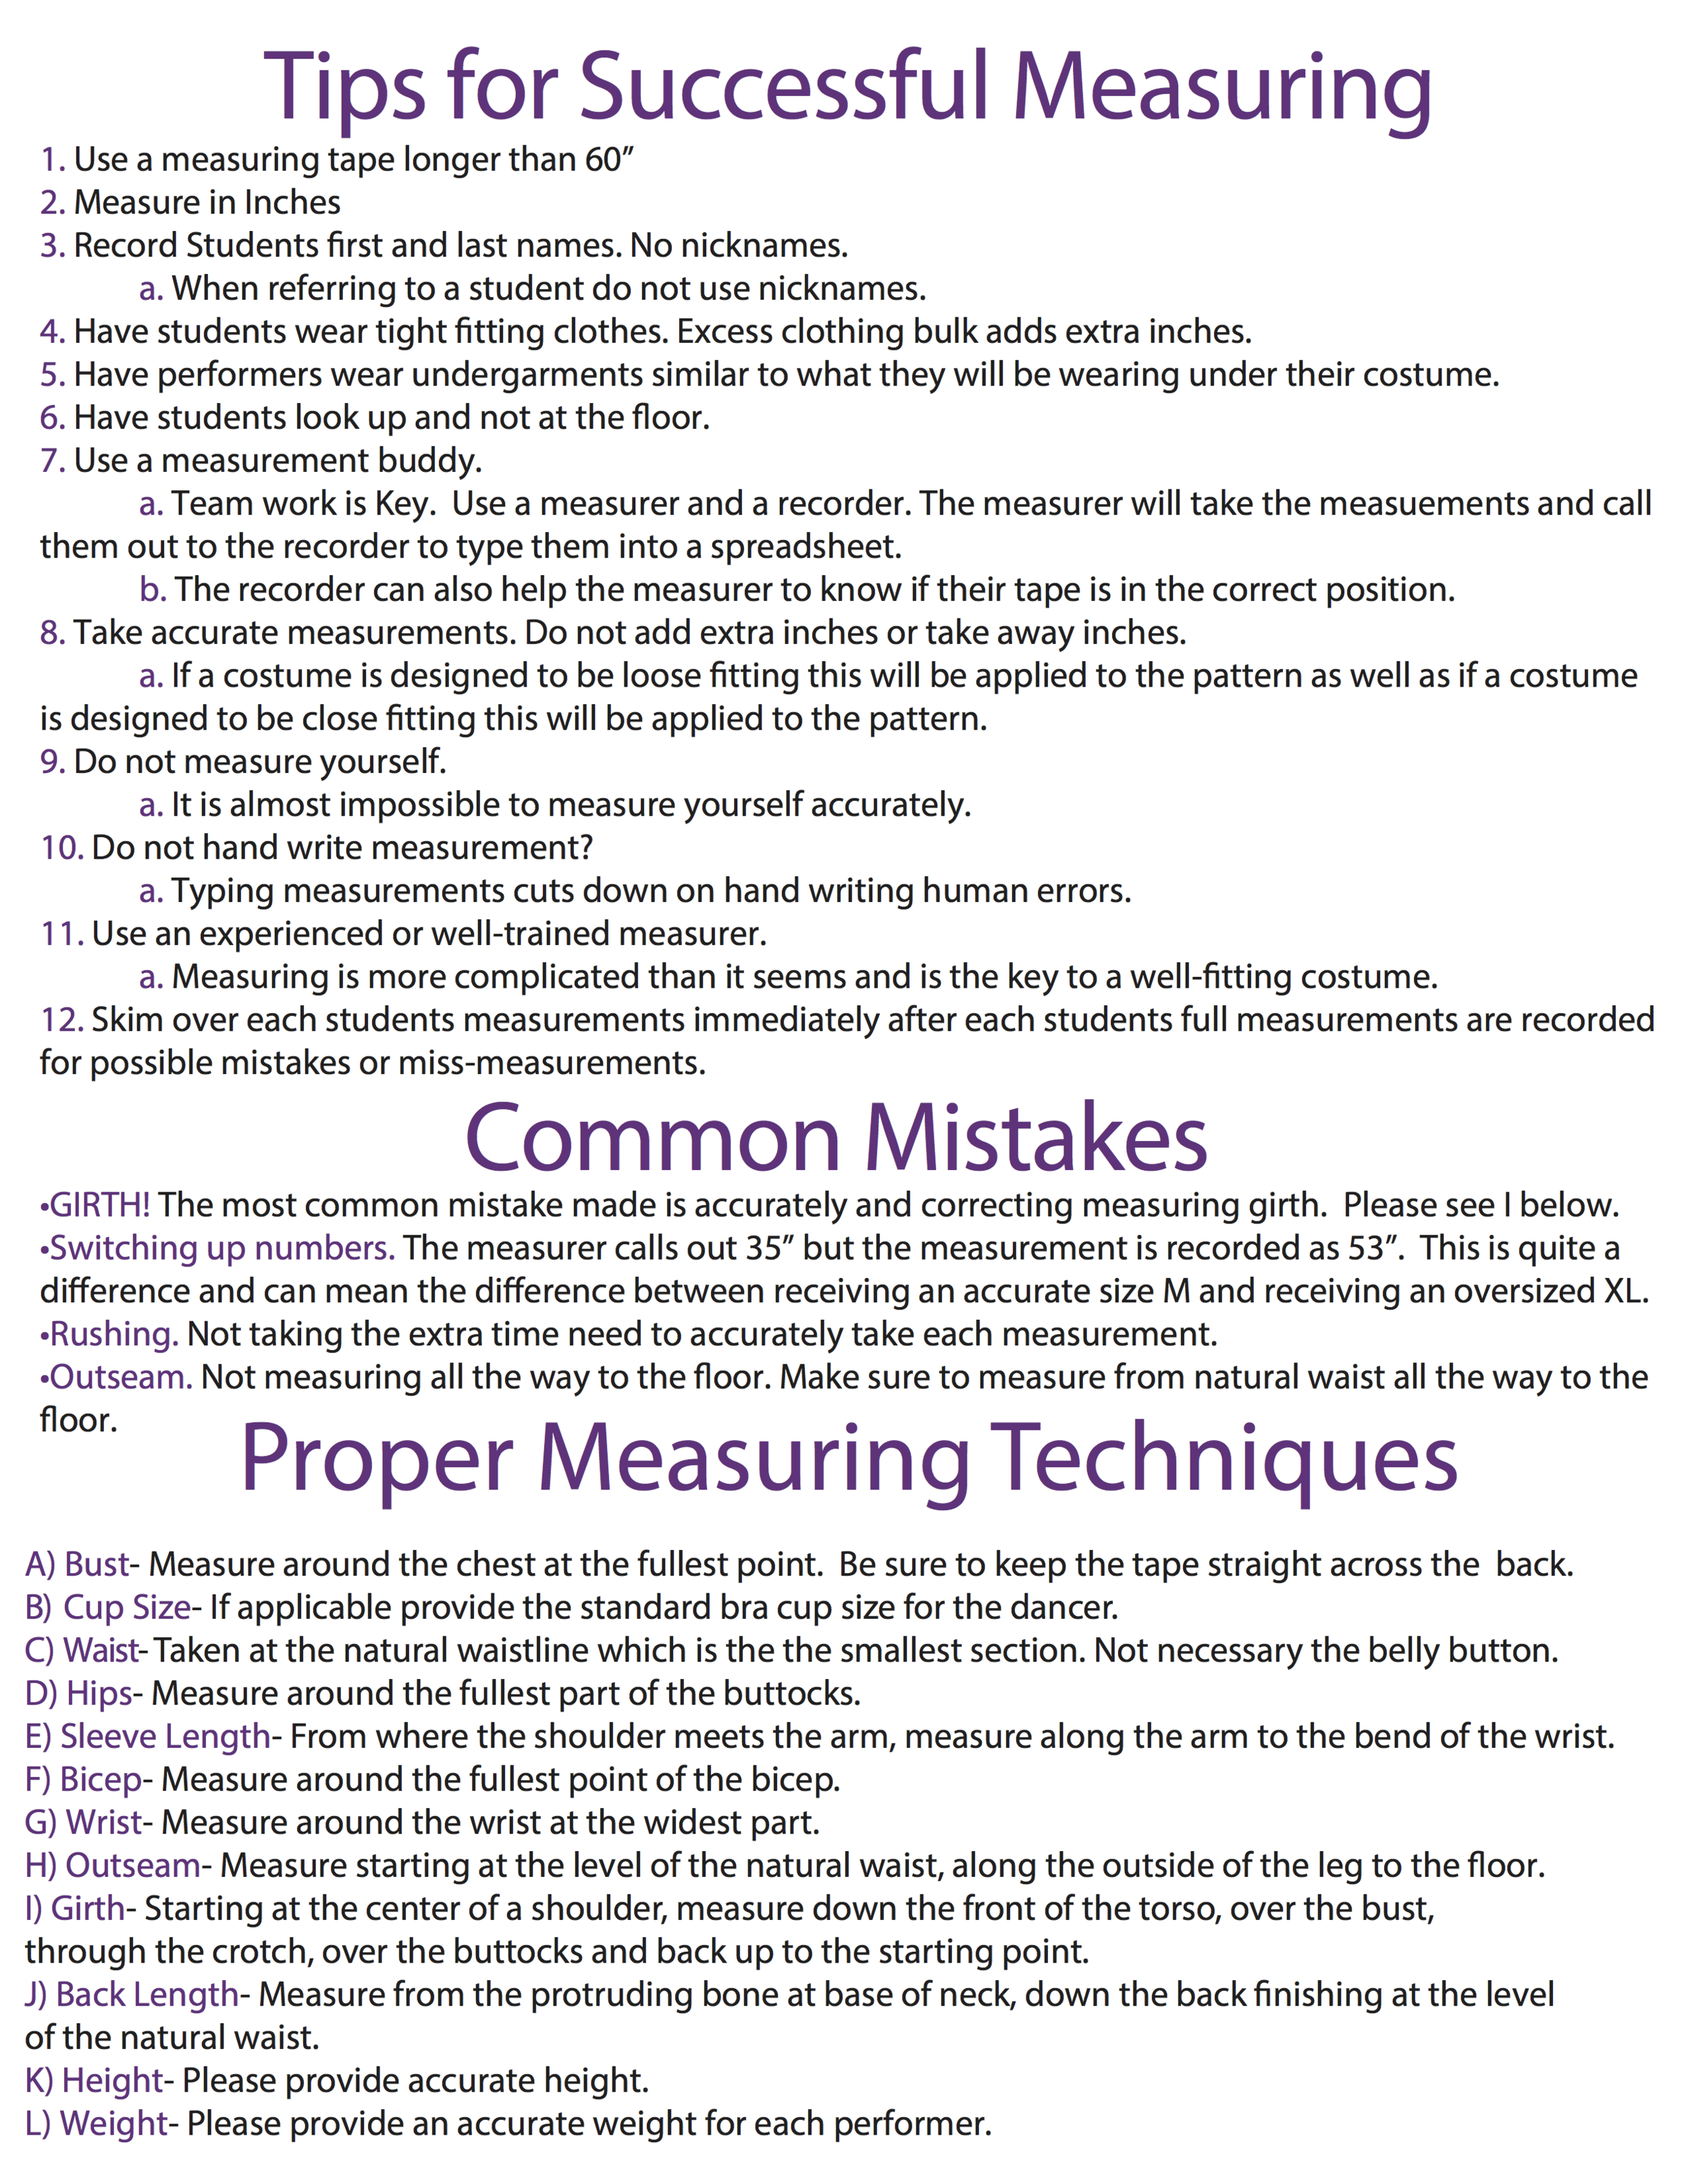 Measuring Techniques page spring 2016.png